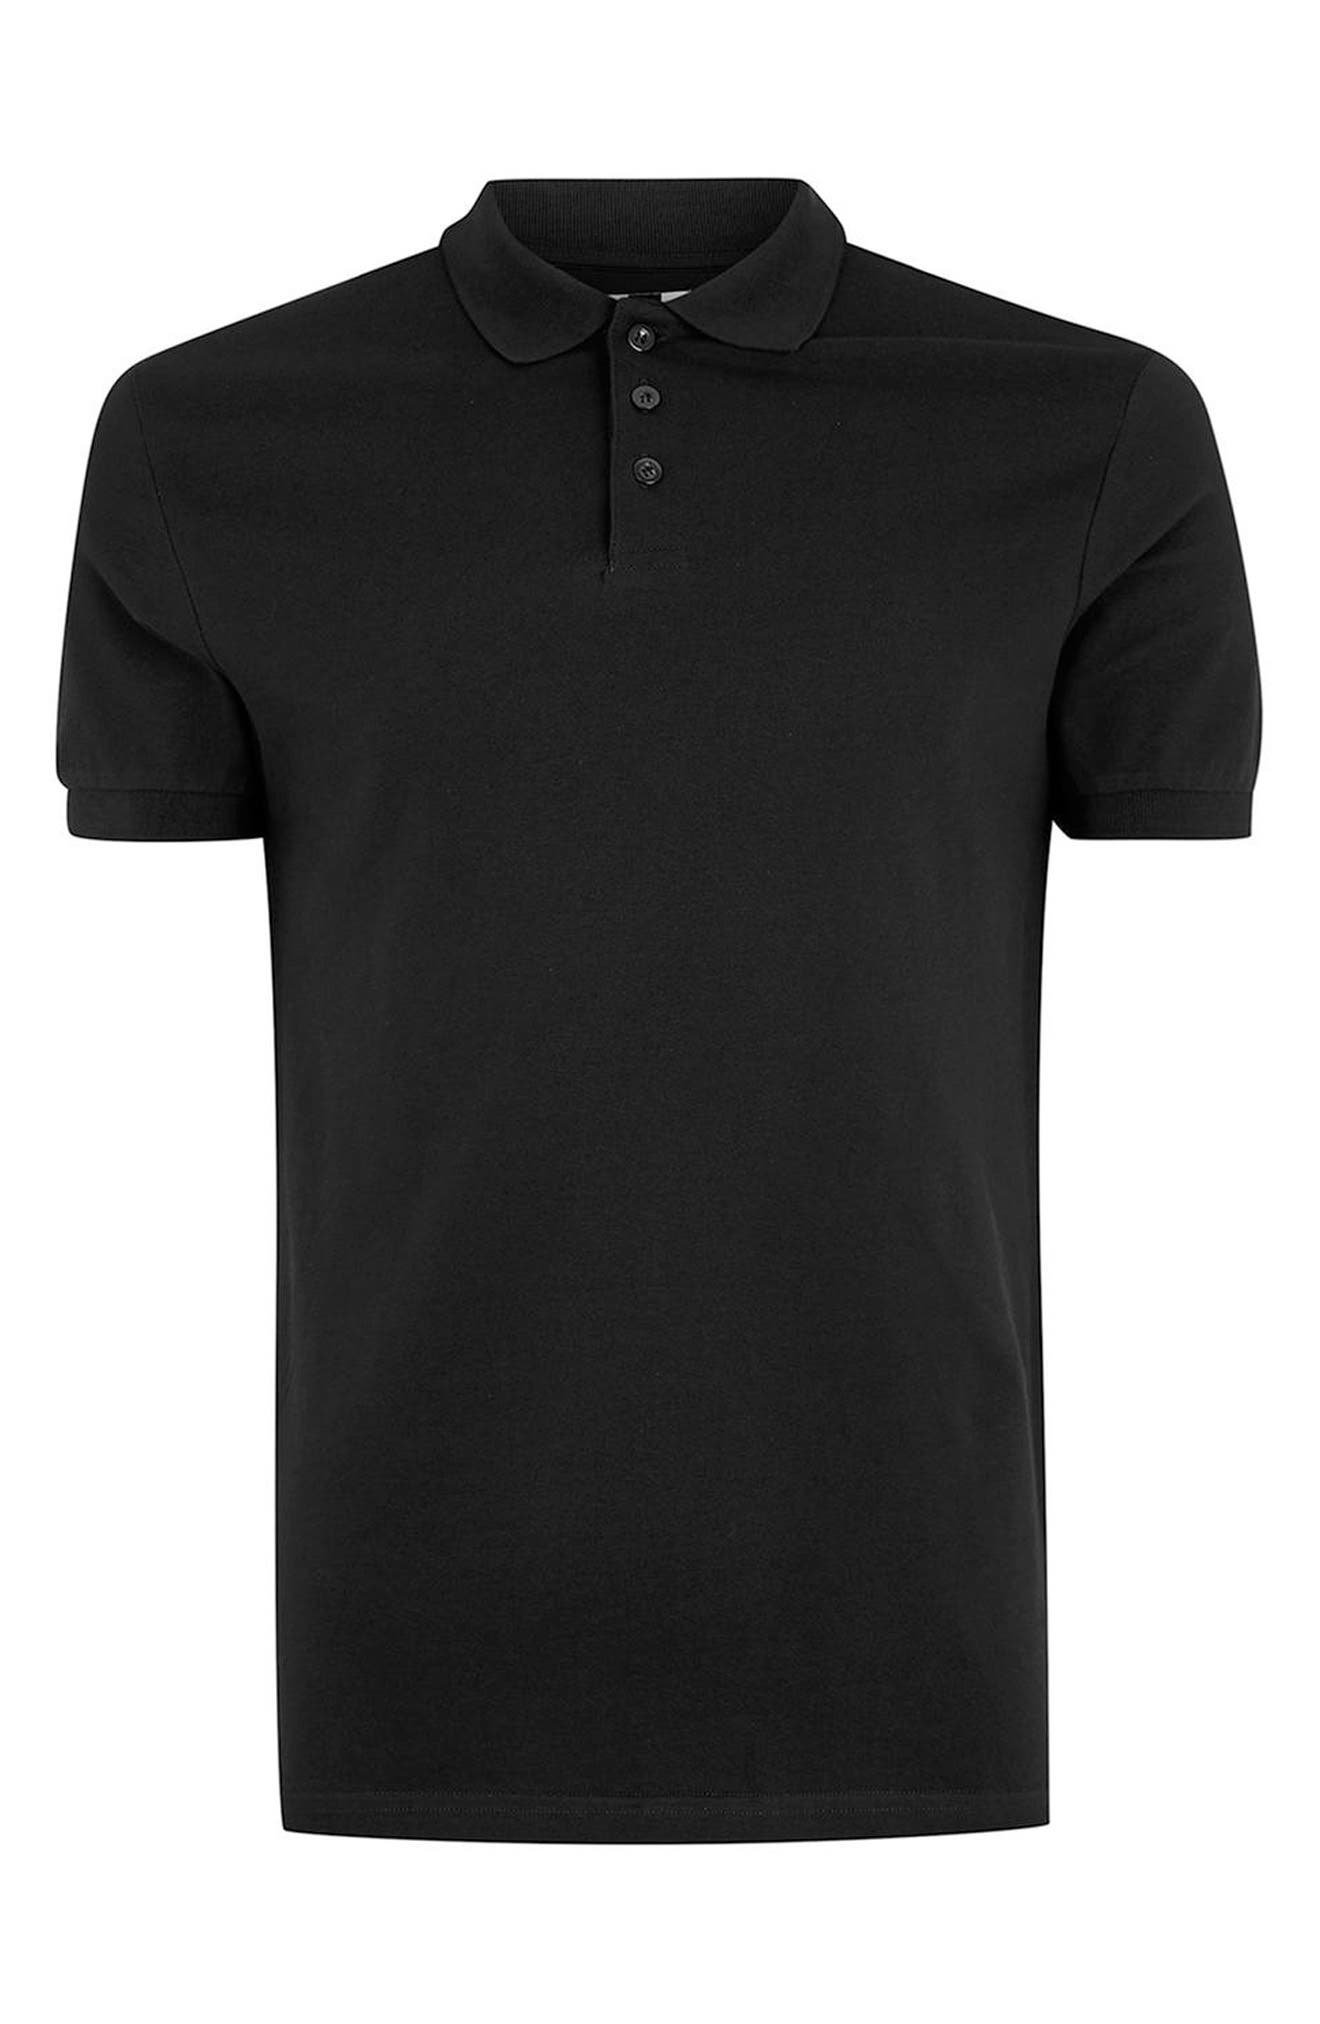 Muscle Fit Polo,                             Alternate thumbnail 4, color,                             001